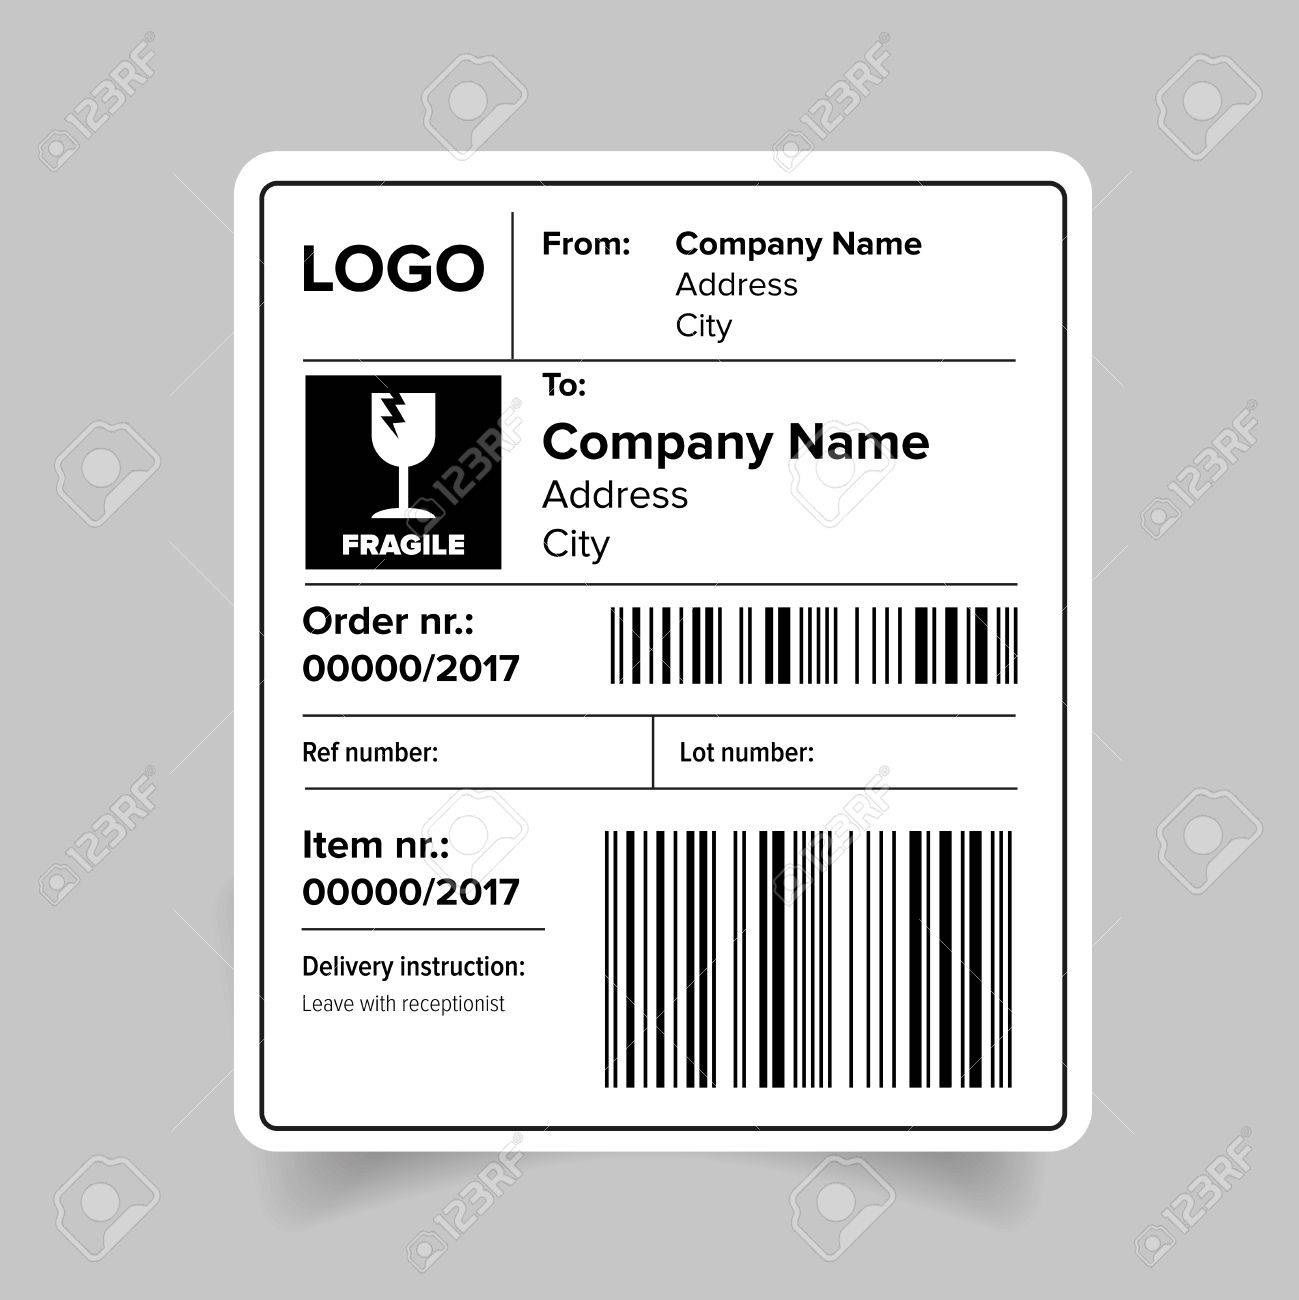 003 Imposing Free Shipping Label Template Photo  Format Word For MacFull